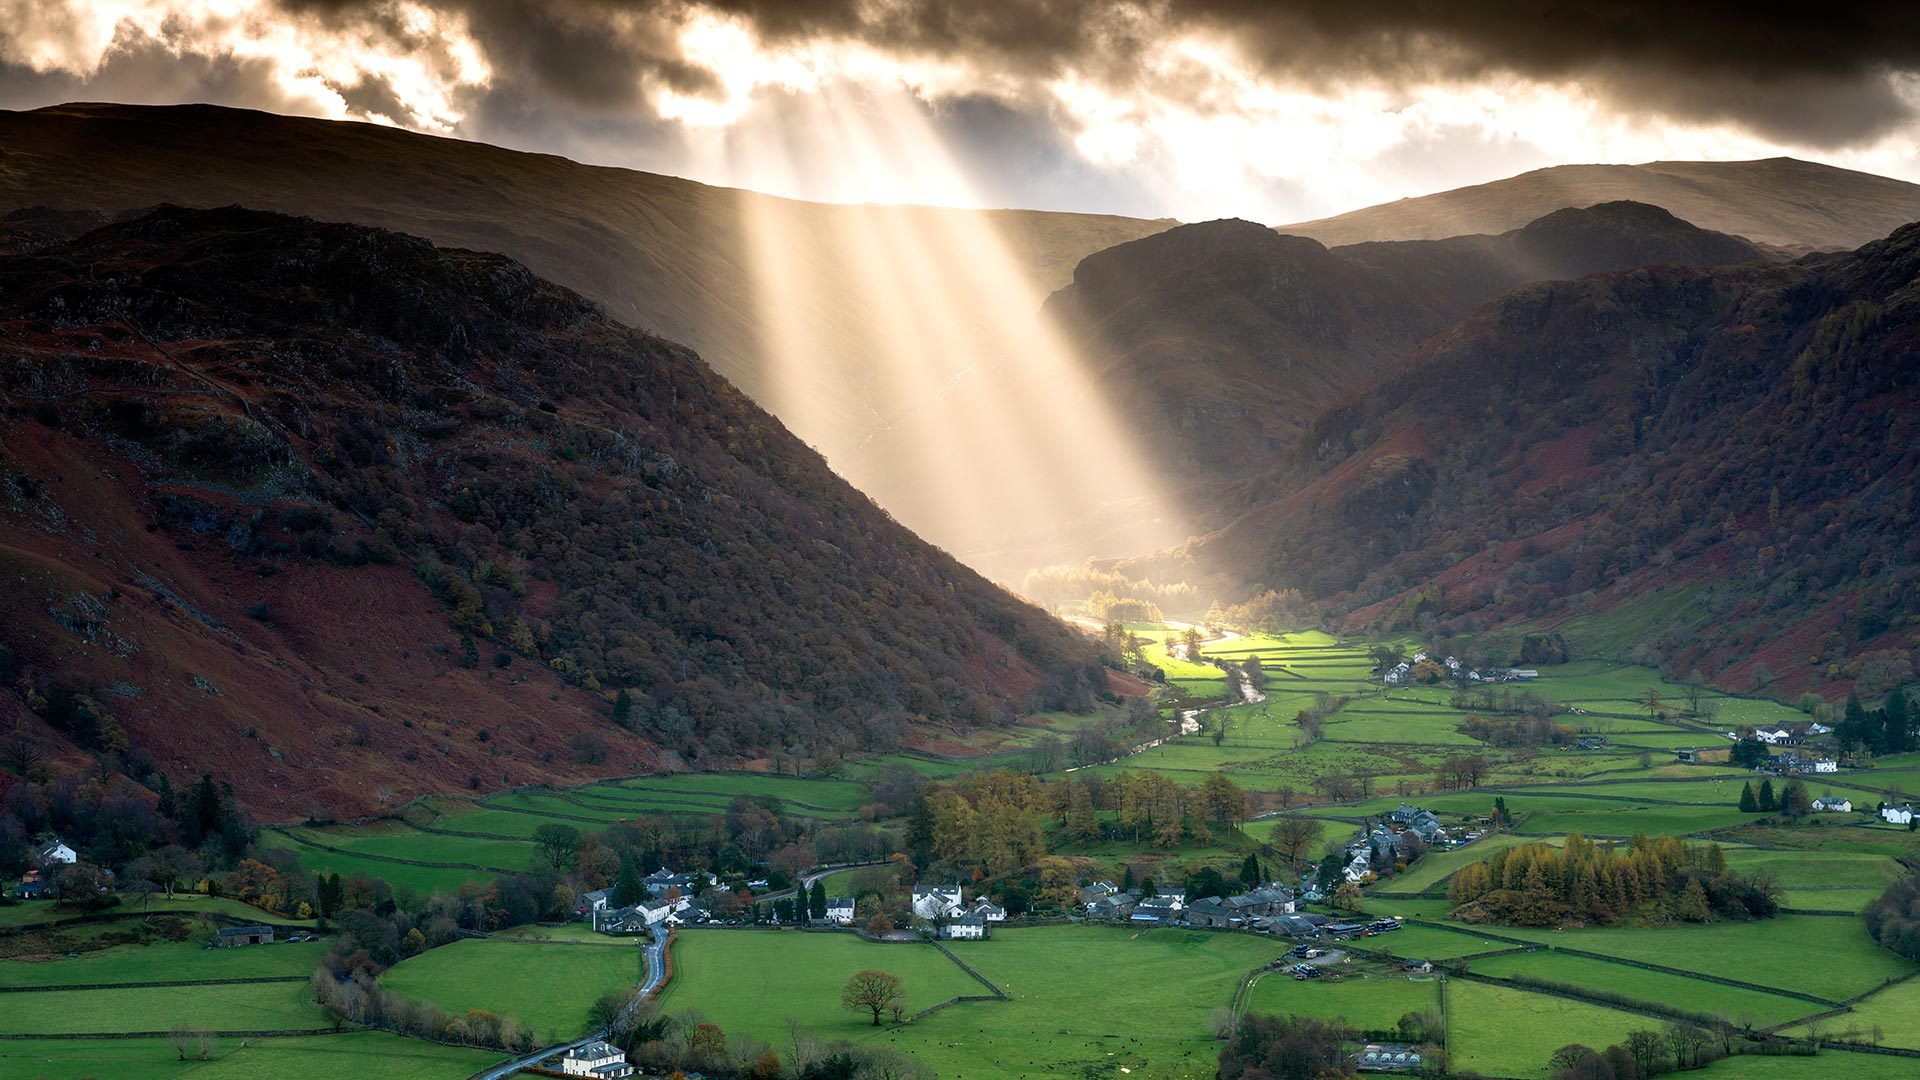 lake district - things to do in England